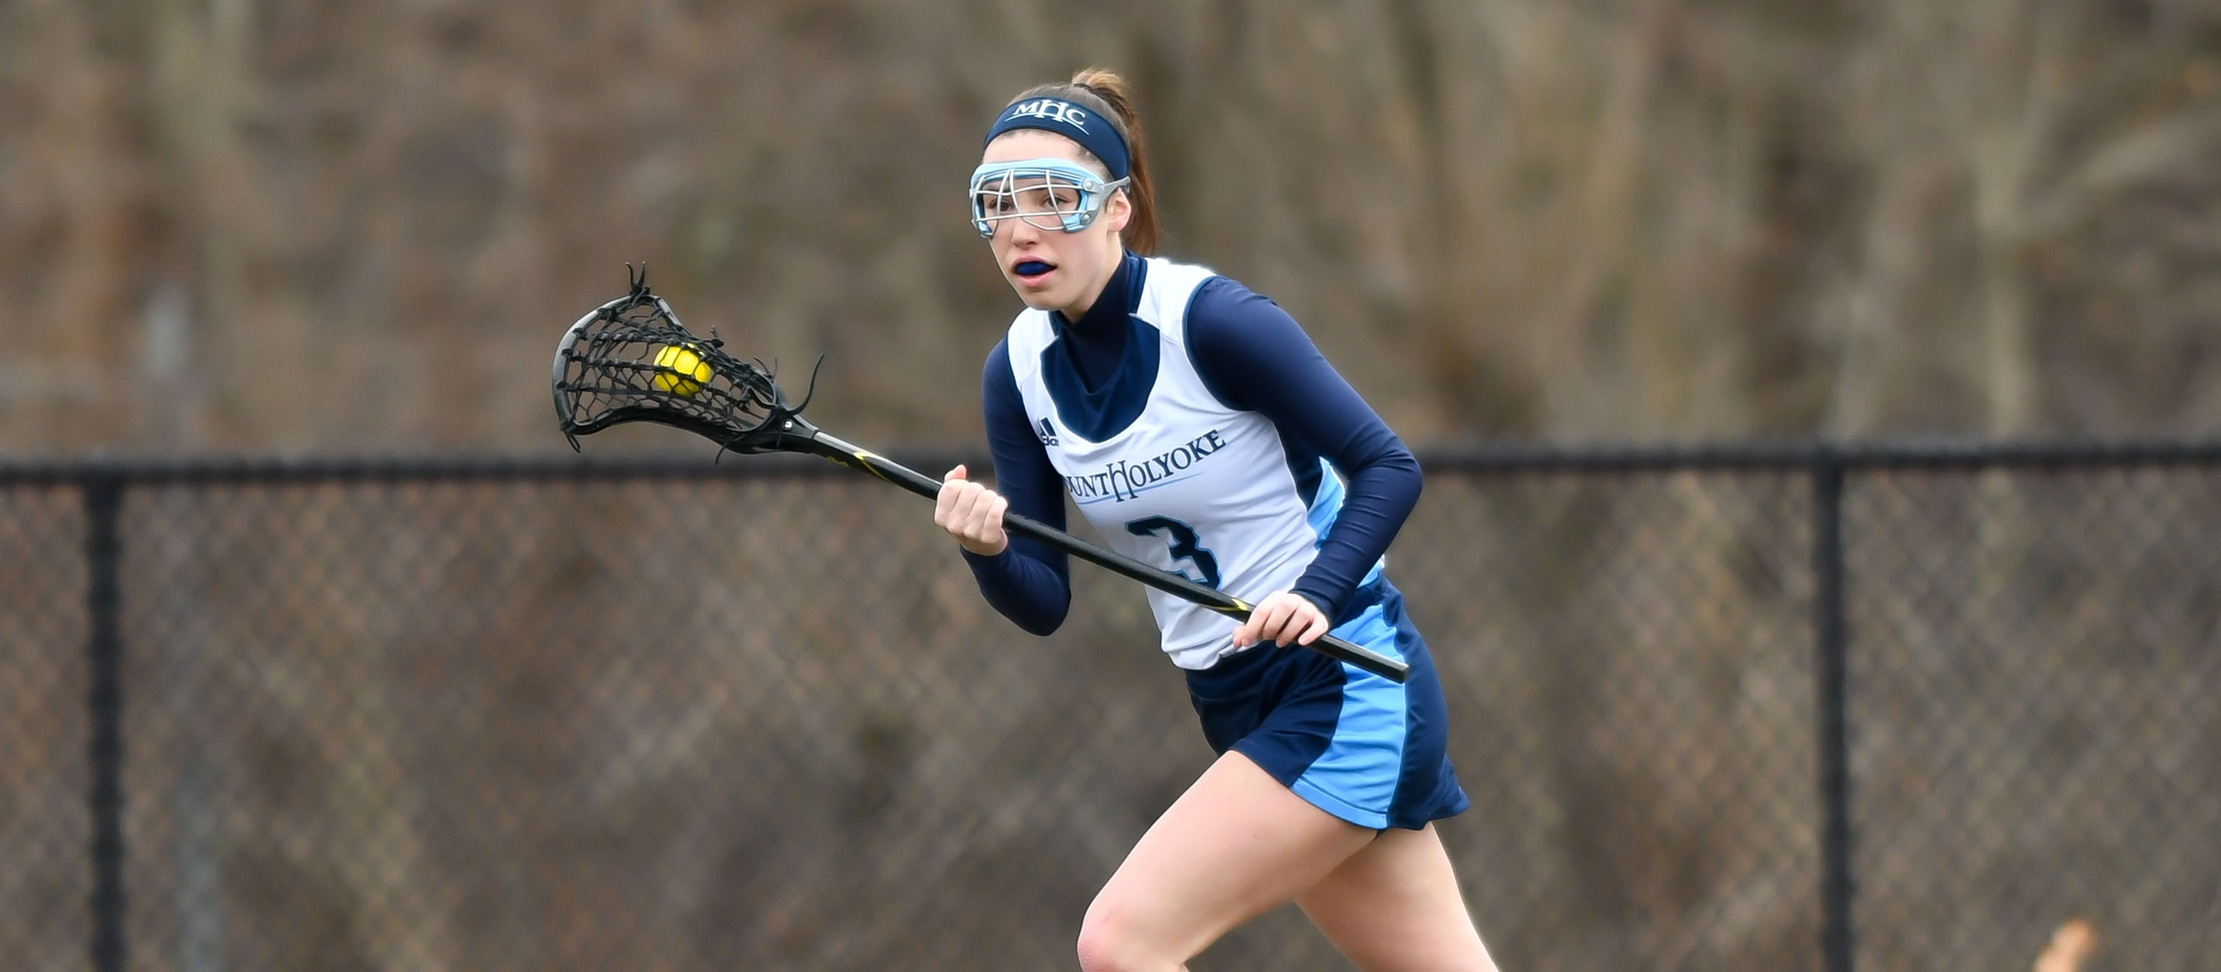 Action photo of junior lacrosse player Mazzie Meotti.